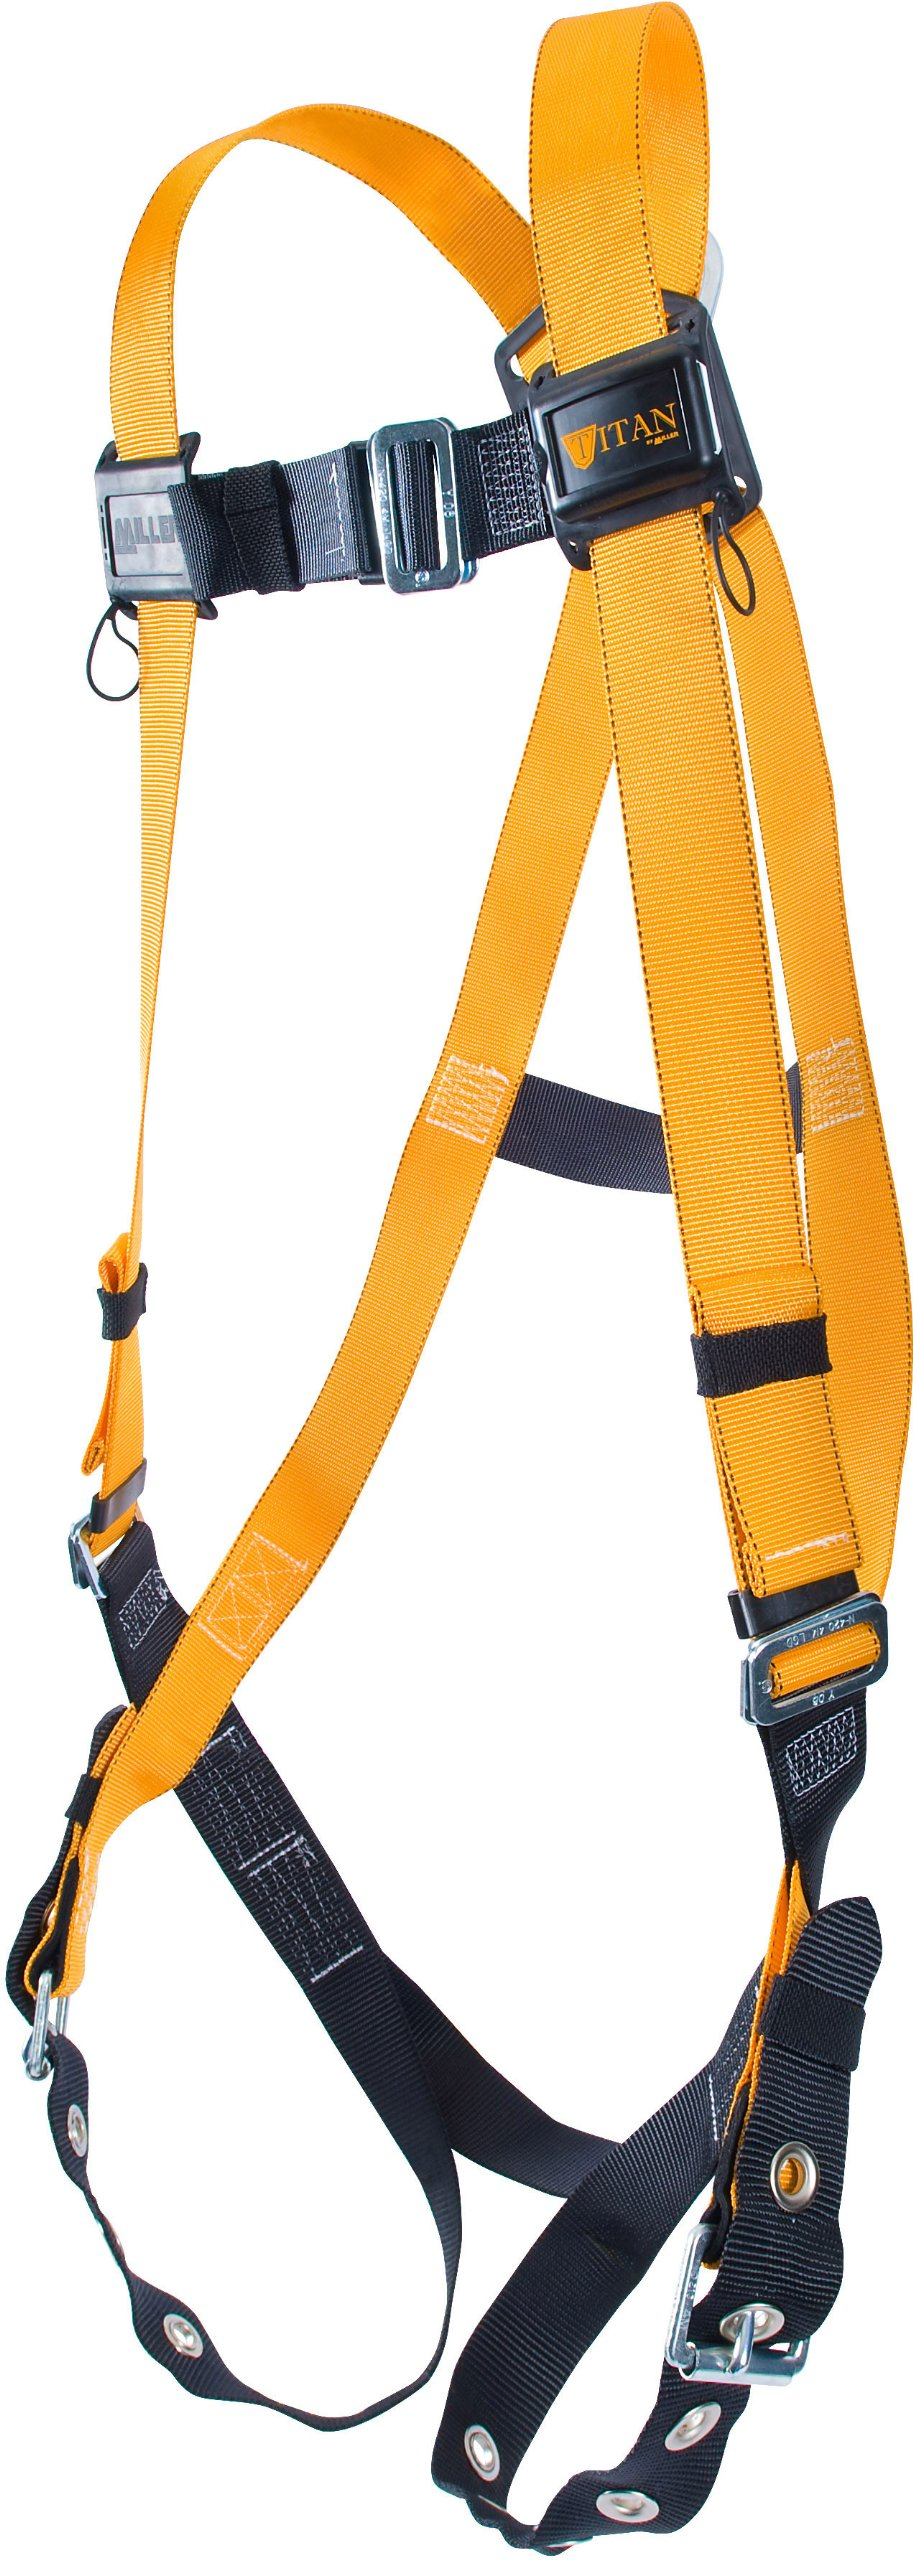 Miller Titan by Honeywell T4507/XXLAK Non-Stretch Harness with Side D-Ring, XX-Large